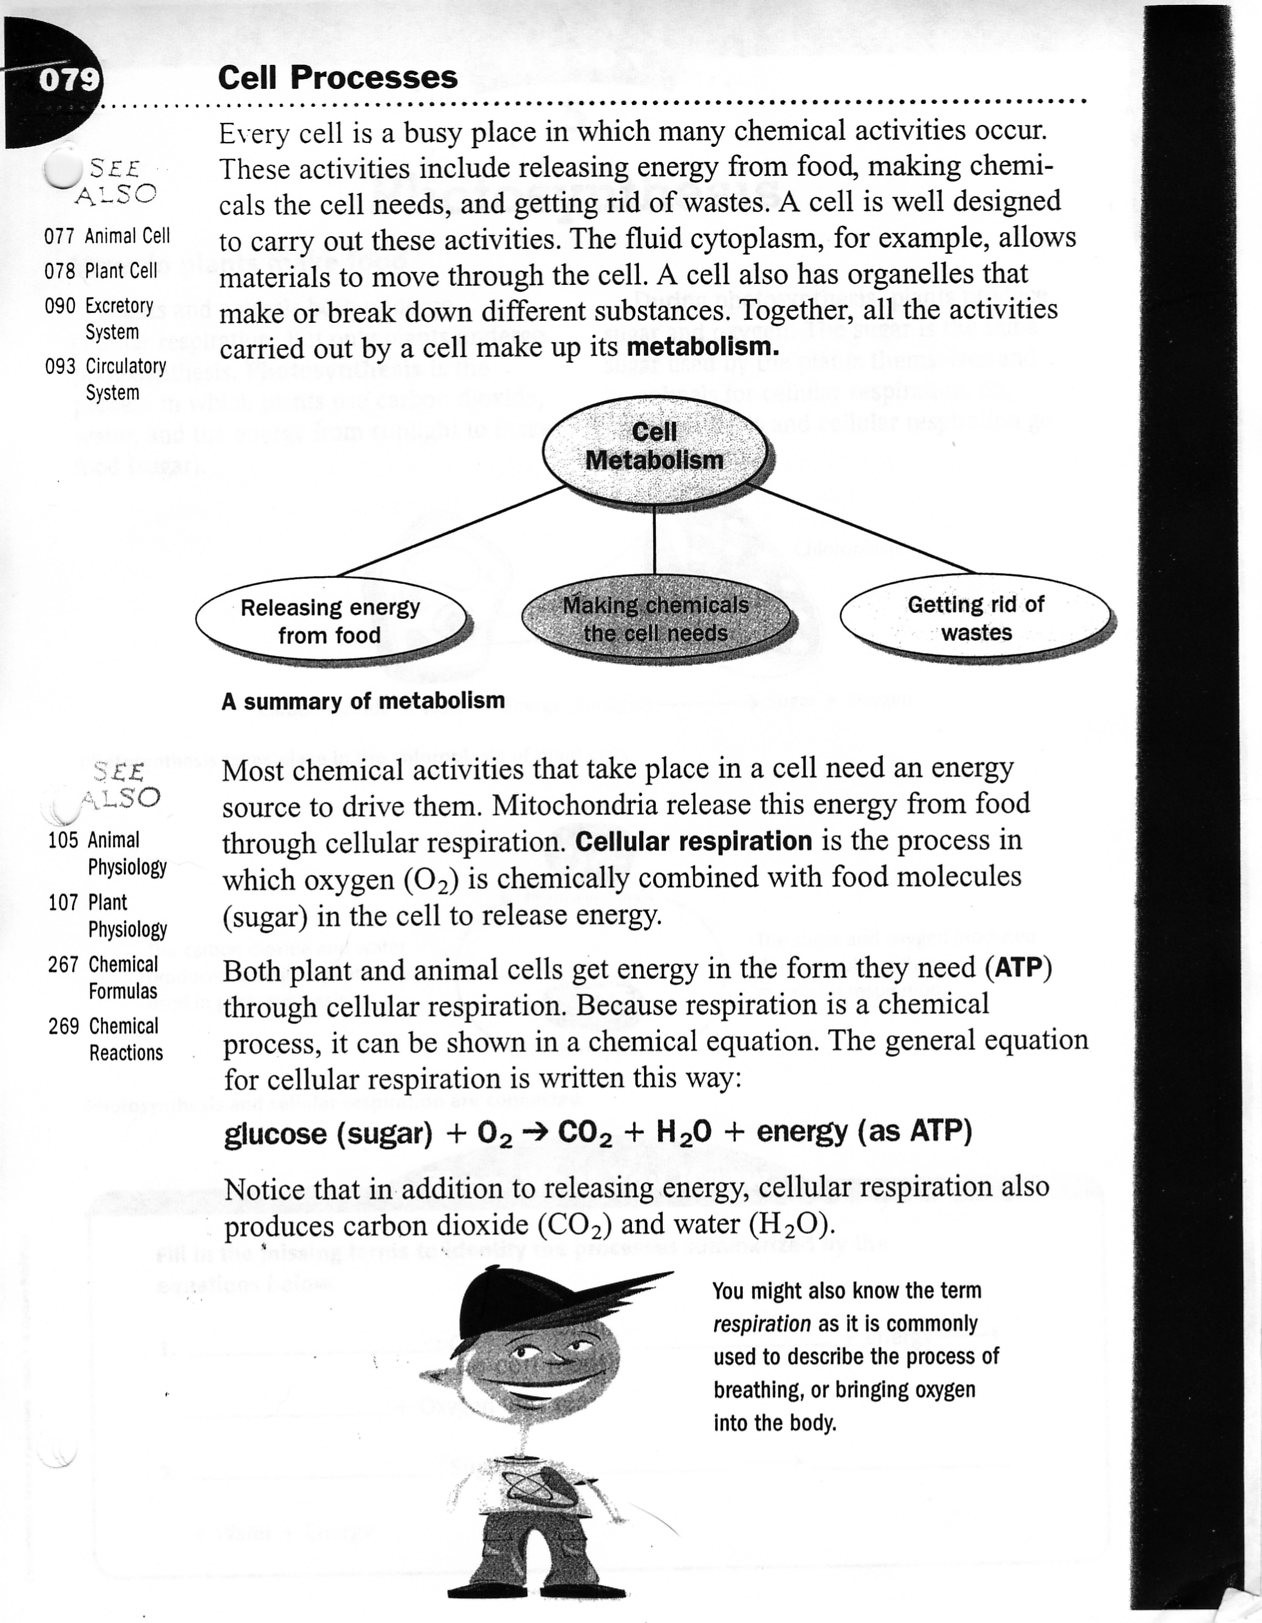 Summary Worksheets Middle School Life Science Easy Worksheets Middle School Cellprocessesws